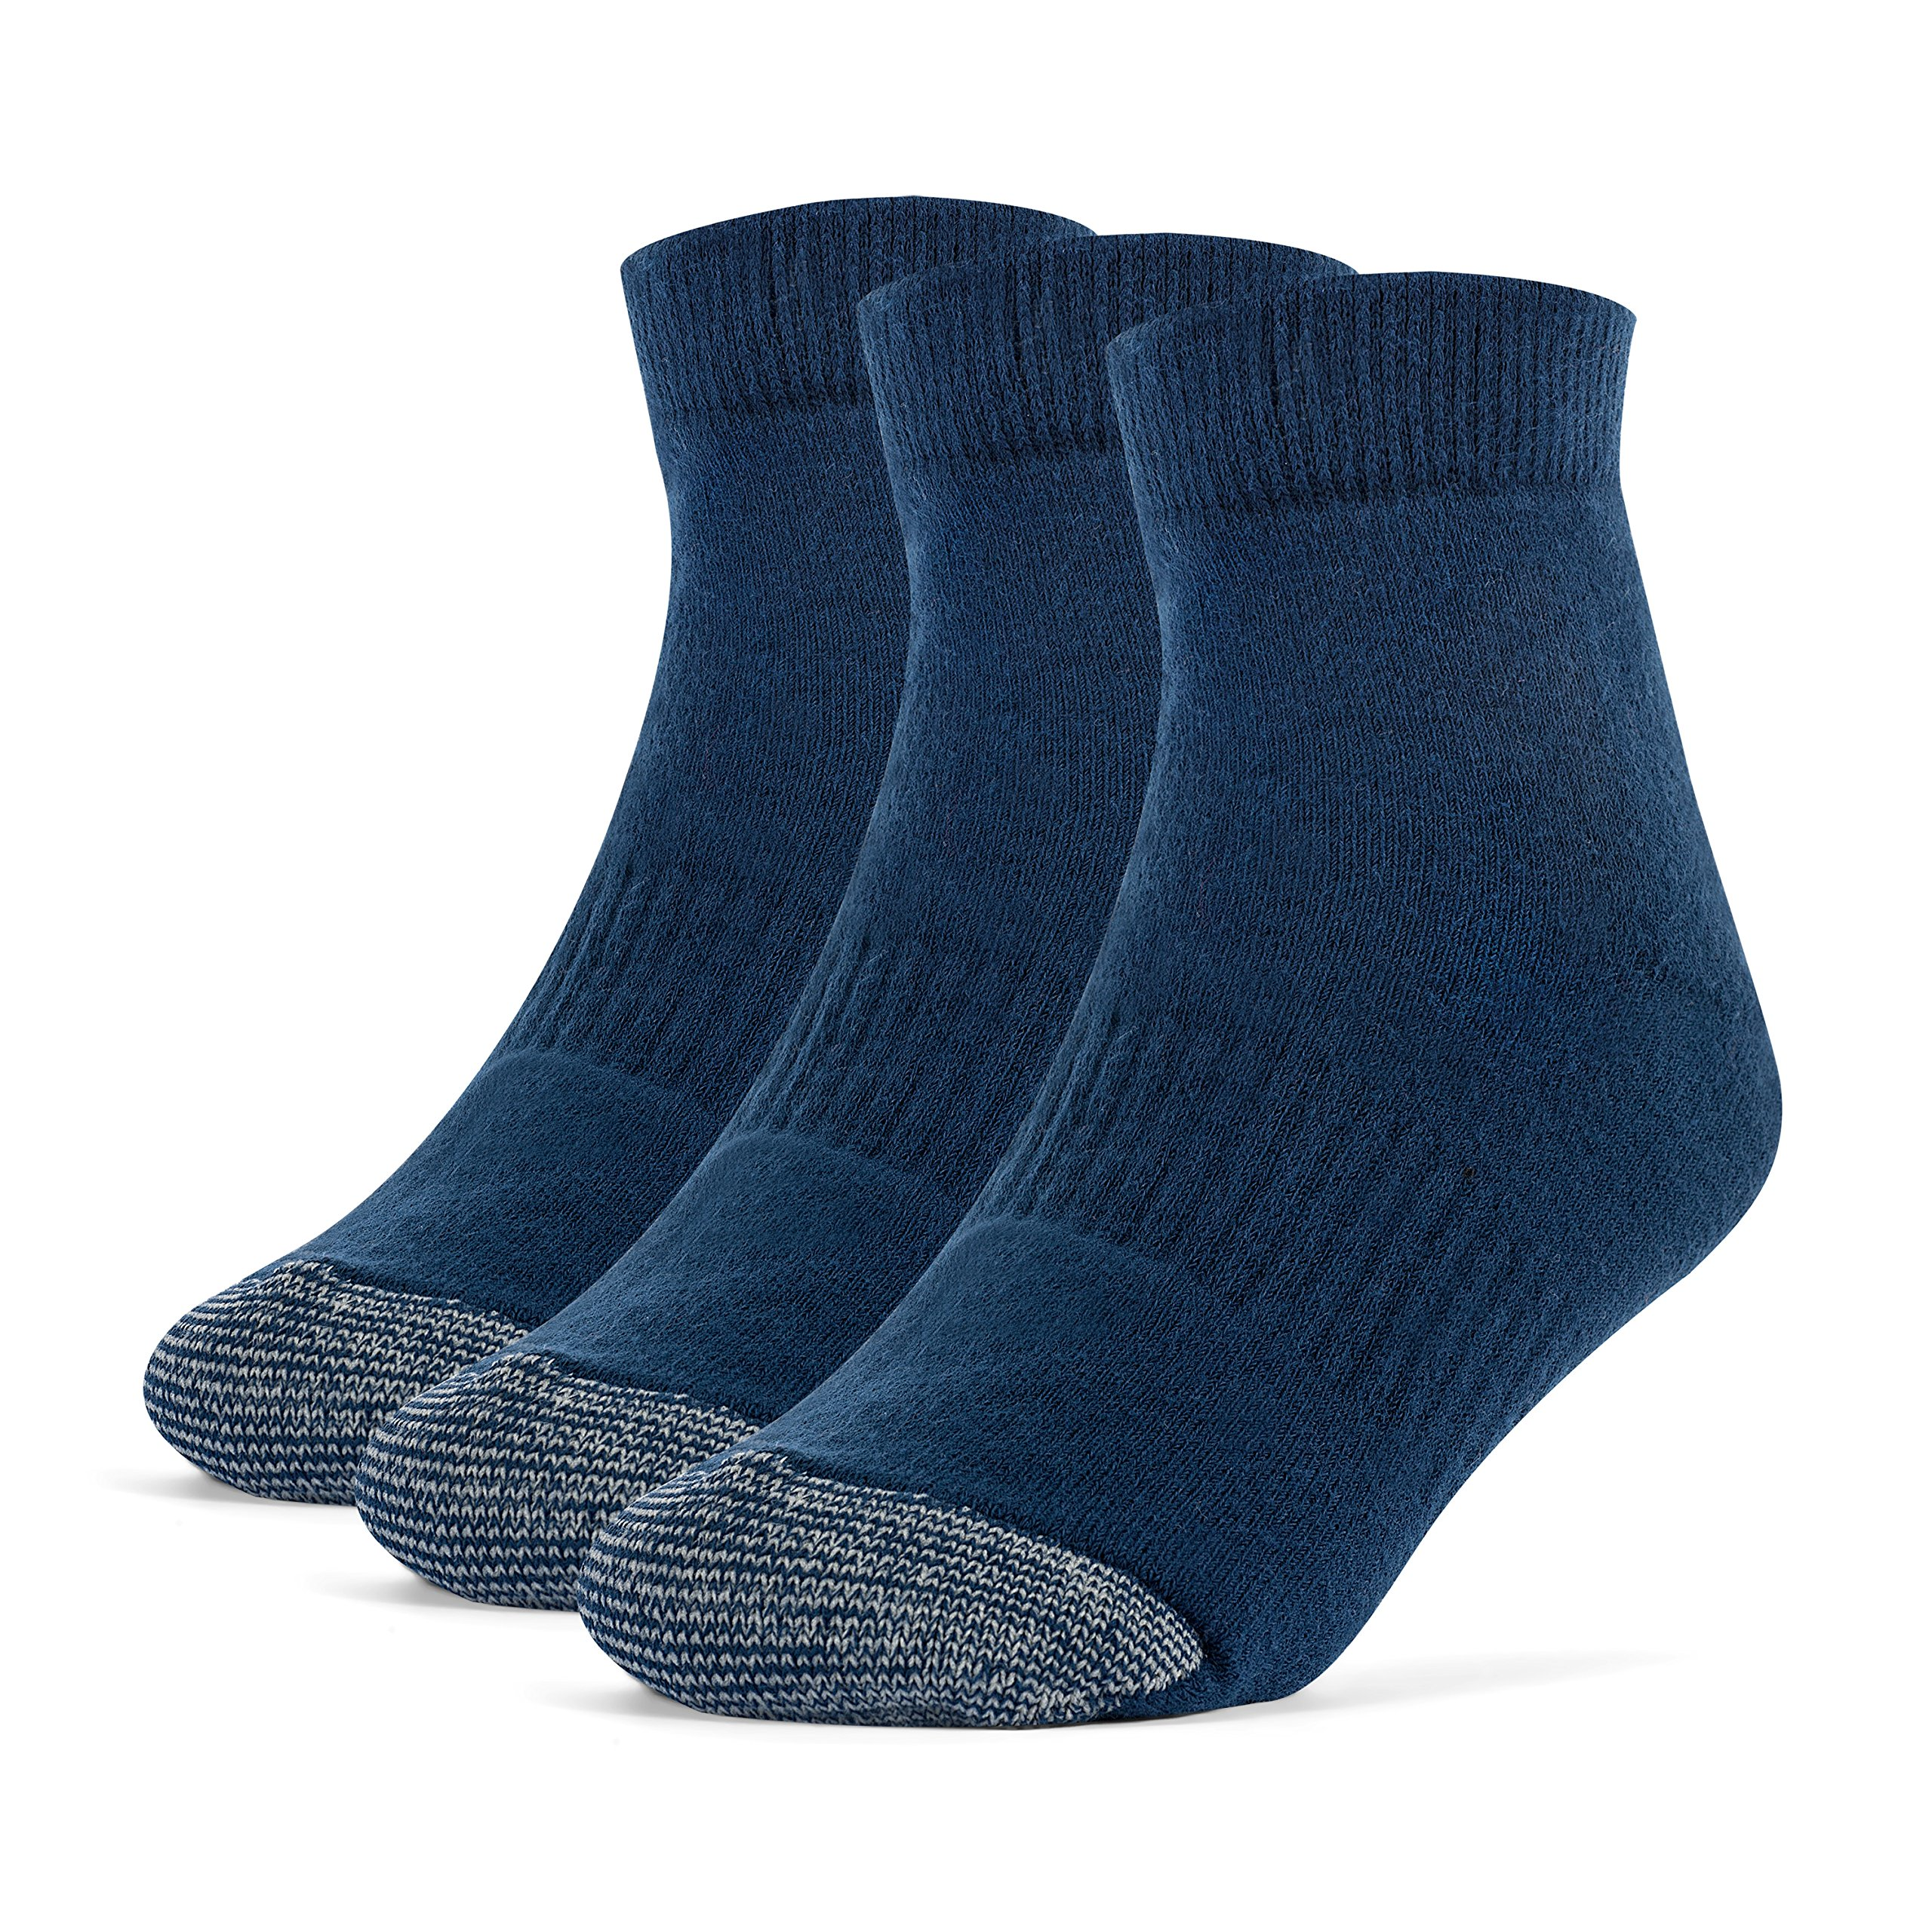 Galiva Girls' Cotton Extra Soft Ankle Cushion Socks - 3 Pairs, Medium, Navy Blue by Galiva (Image #1)